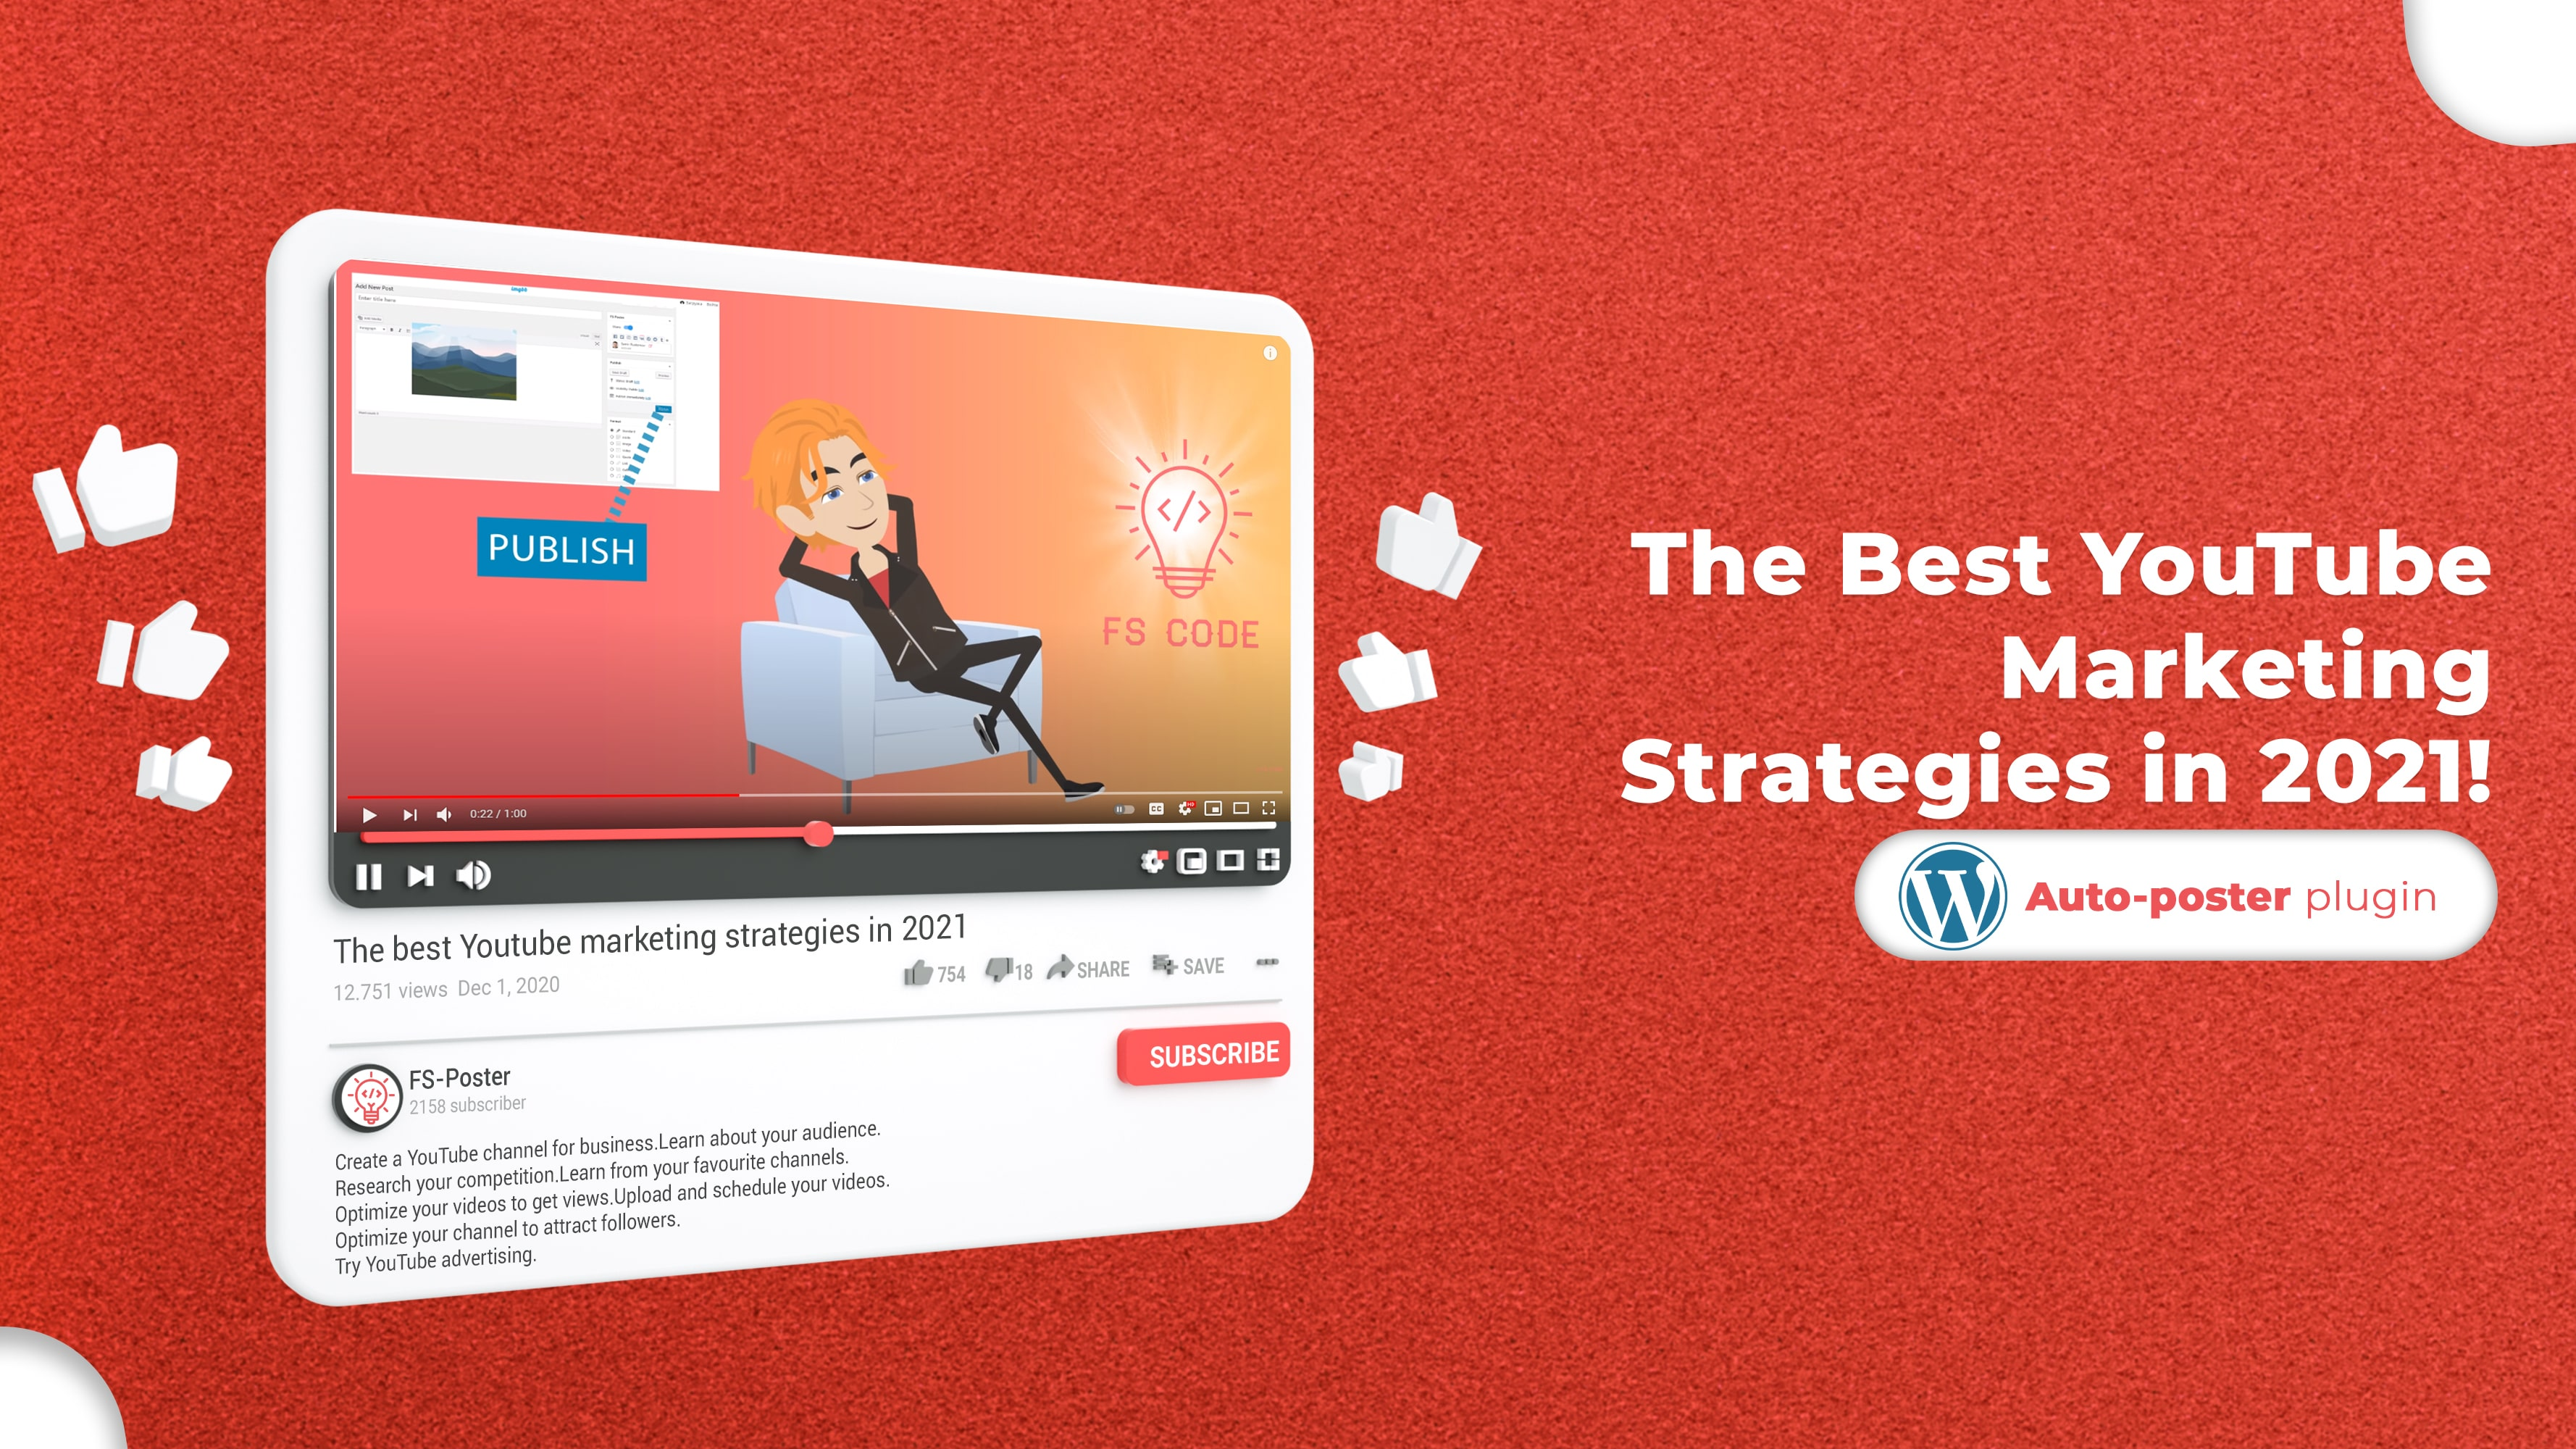 The Best YouTube Marketing Strategies in 2021